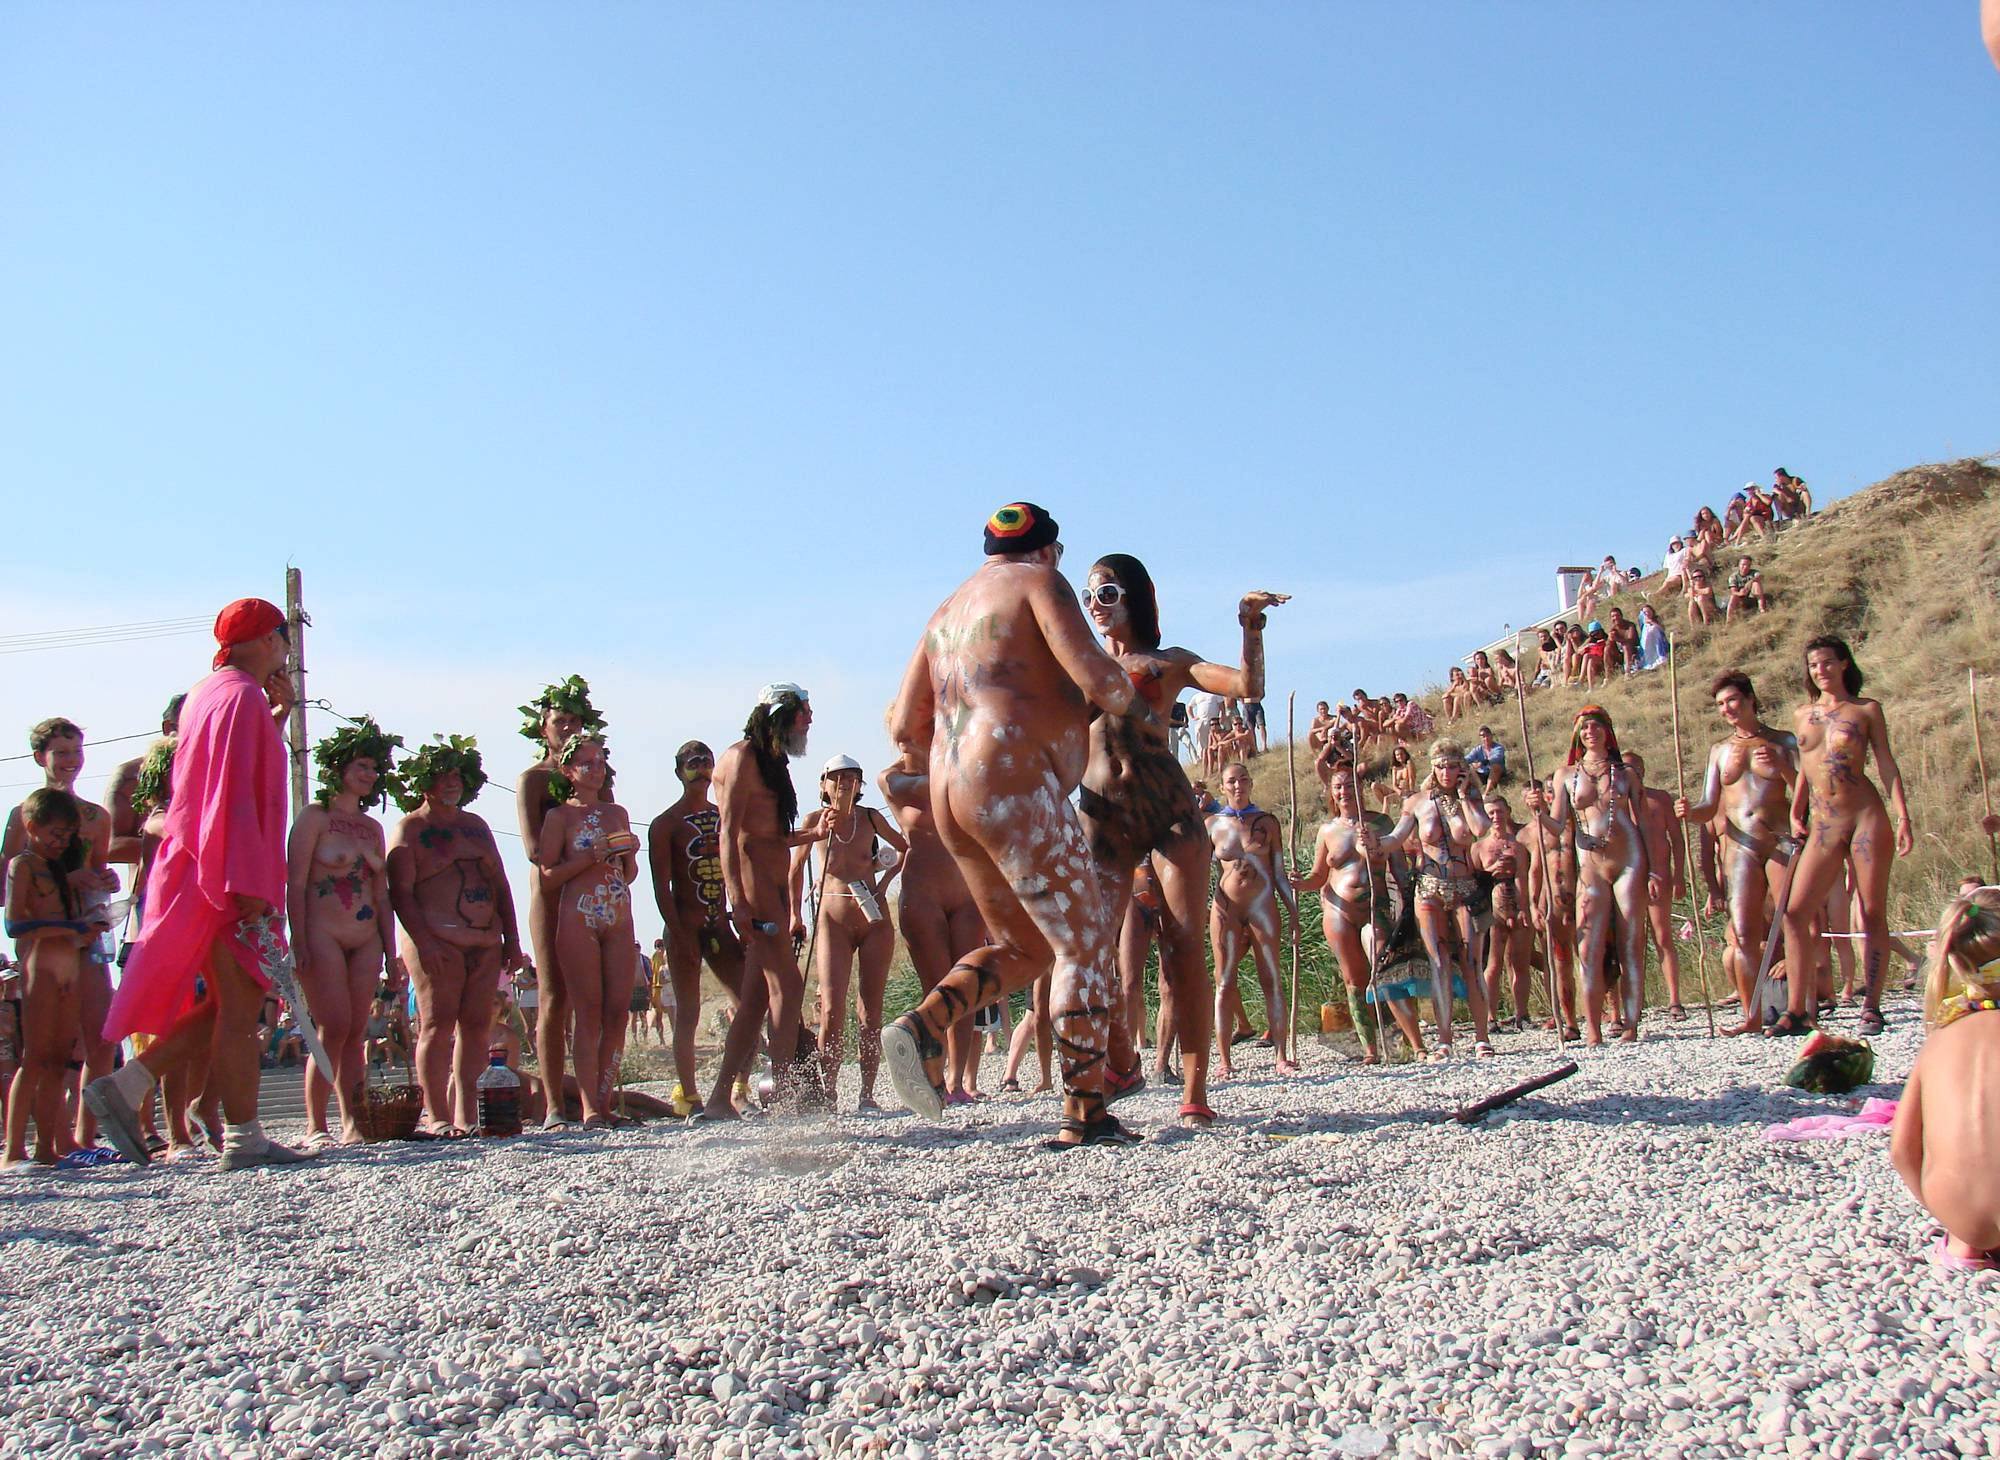 Nudist Pictures Neptune Day Dance Views - 1